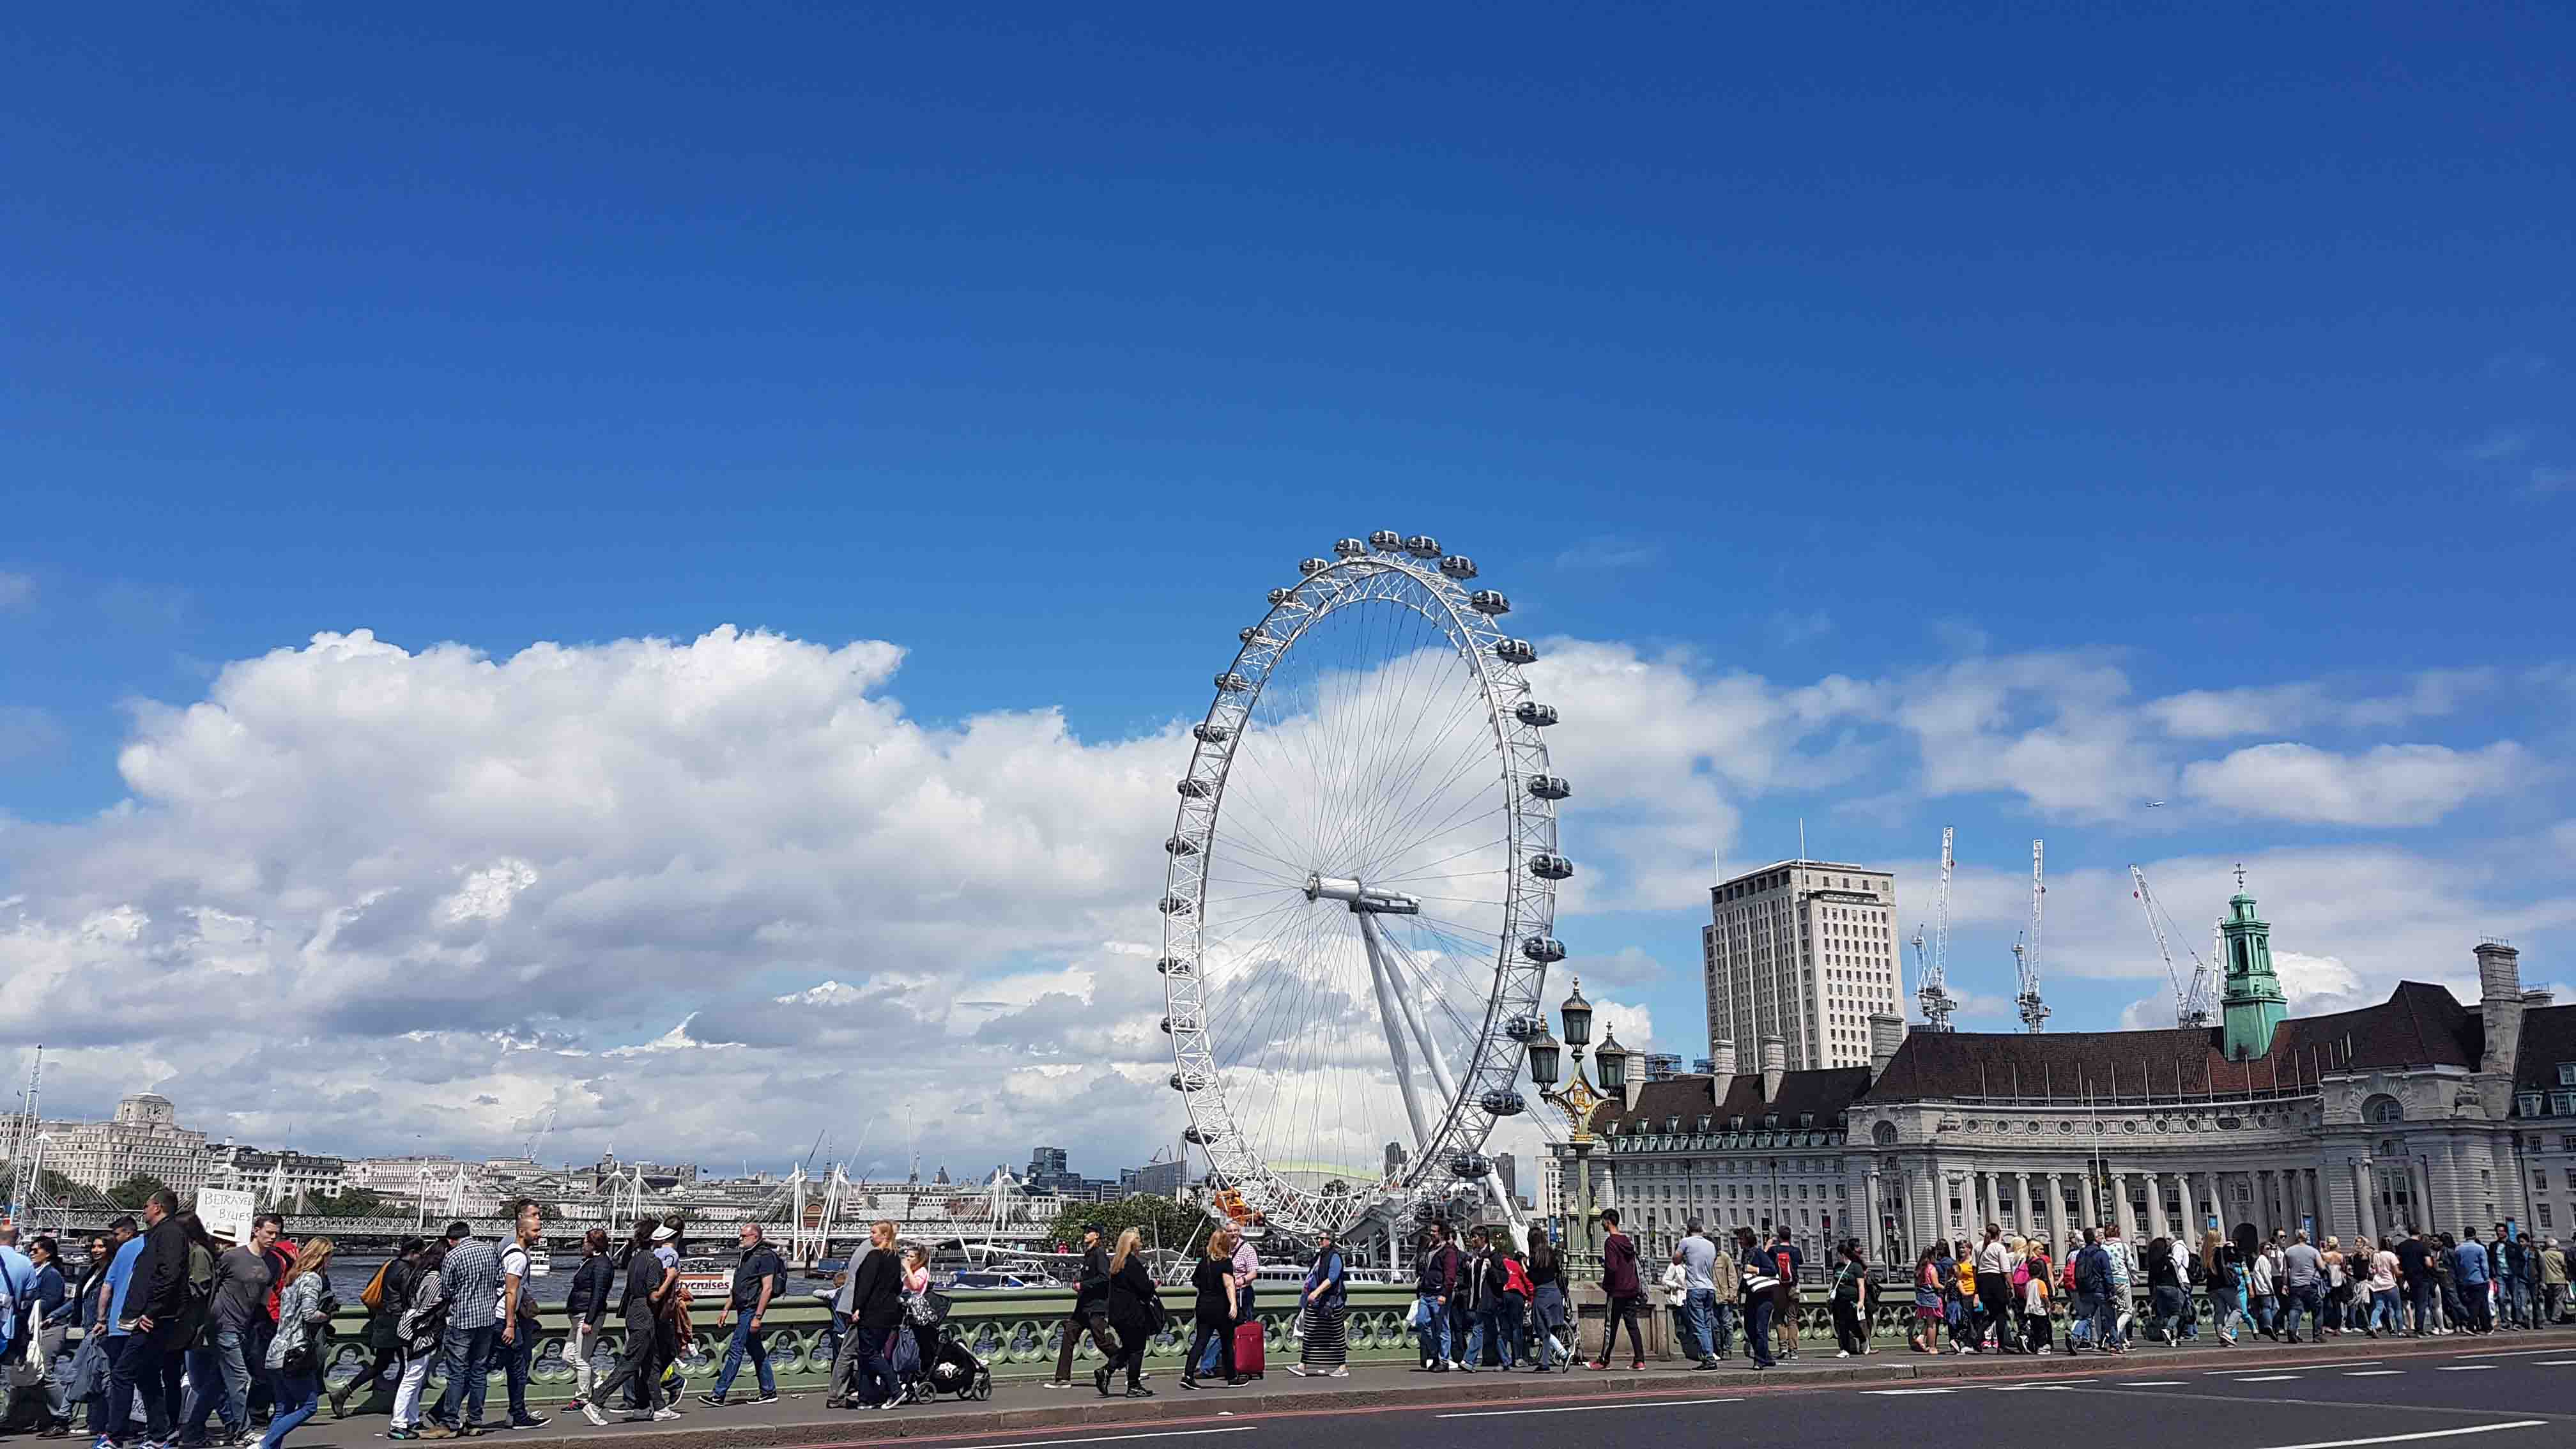 London Eye - roda gigante de Londres